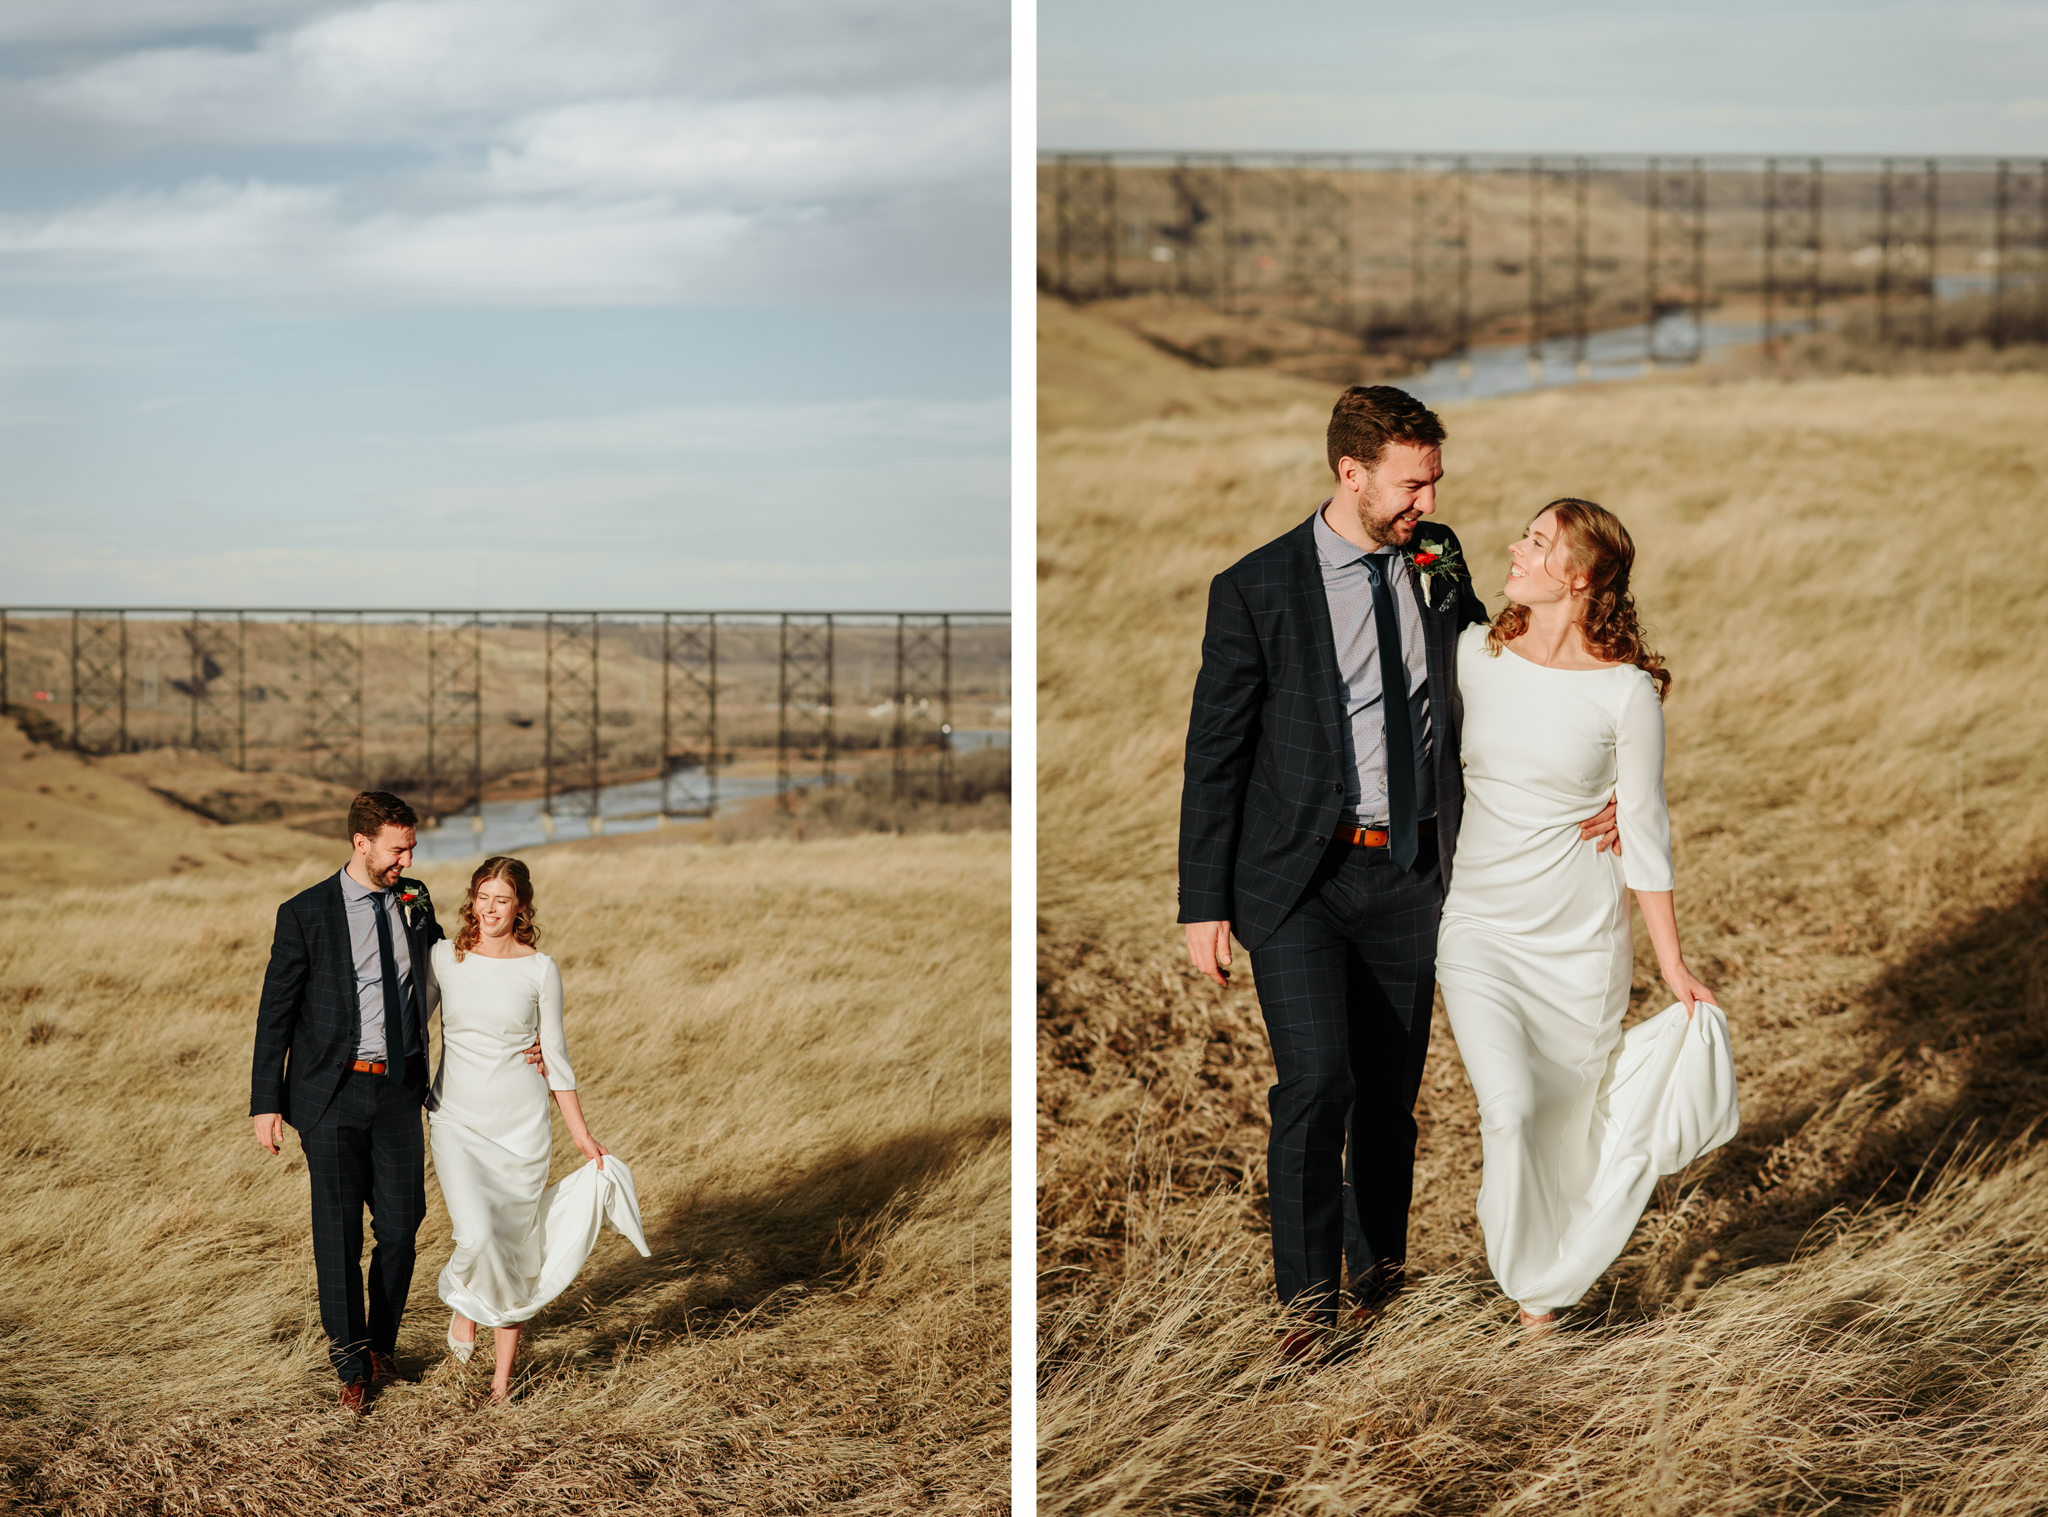 lethbridge-wedding-photographer-love-and-be-loved-photography-kris-amy-paradise-canyon-image-picture-photo-38.jpg